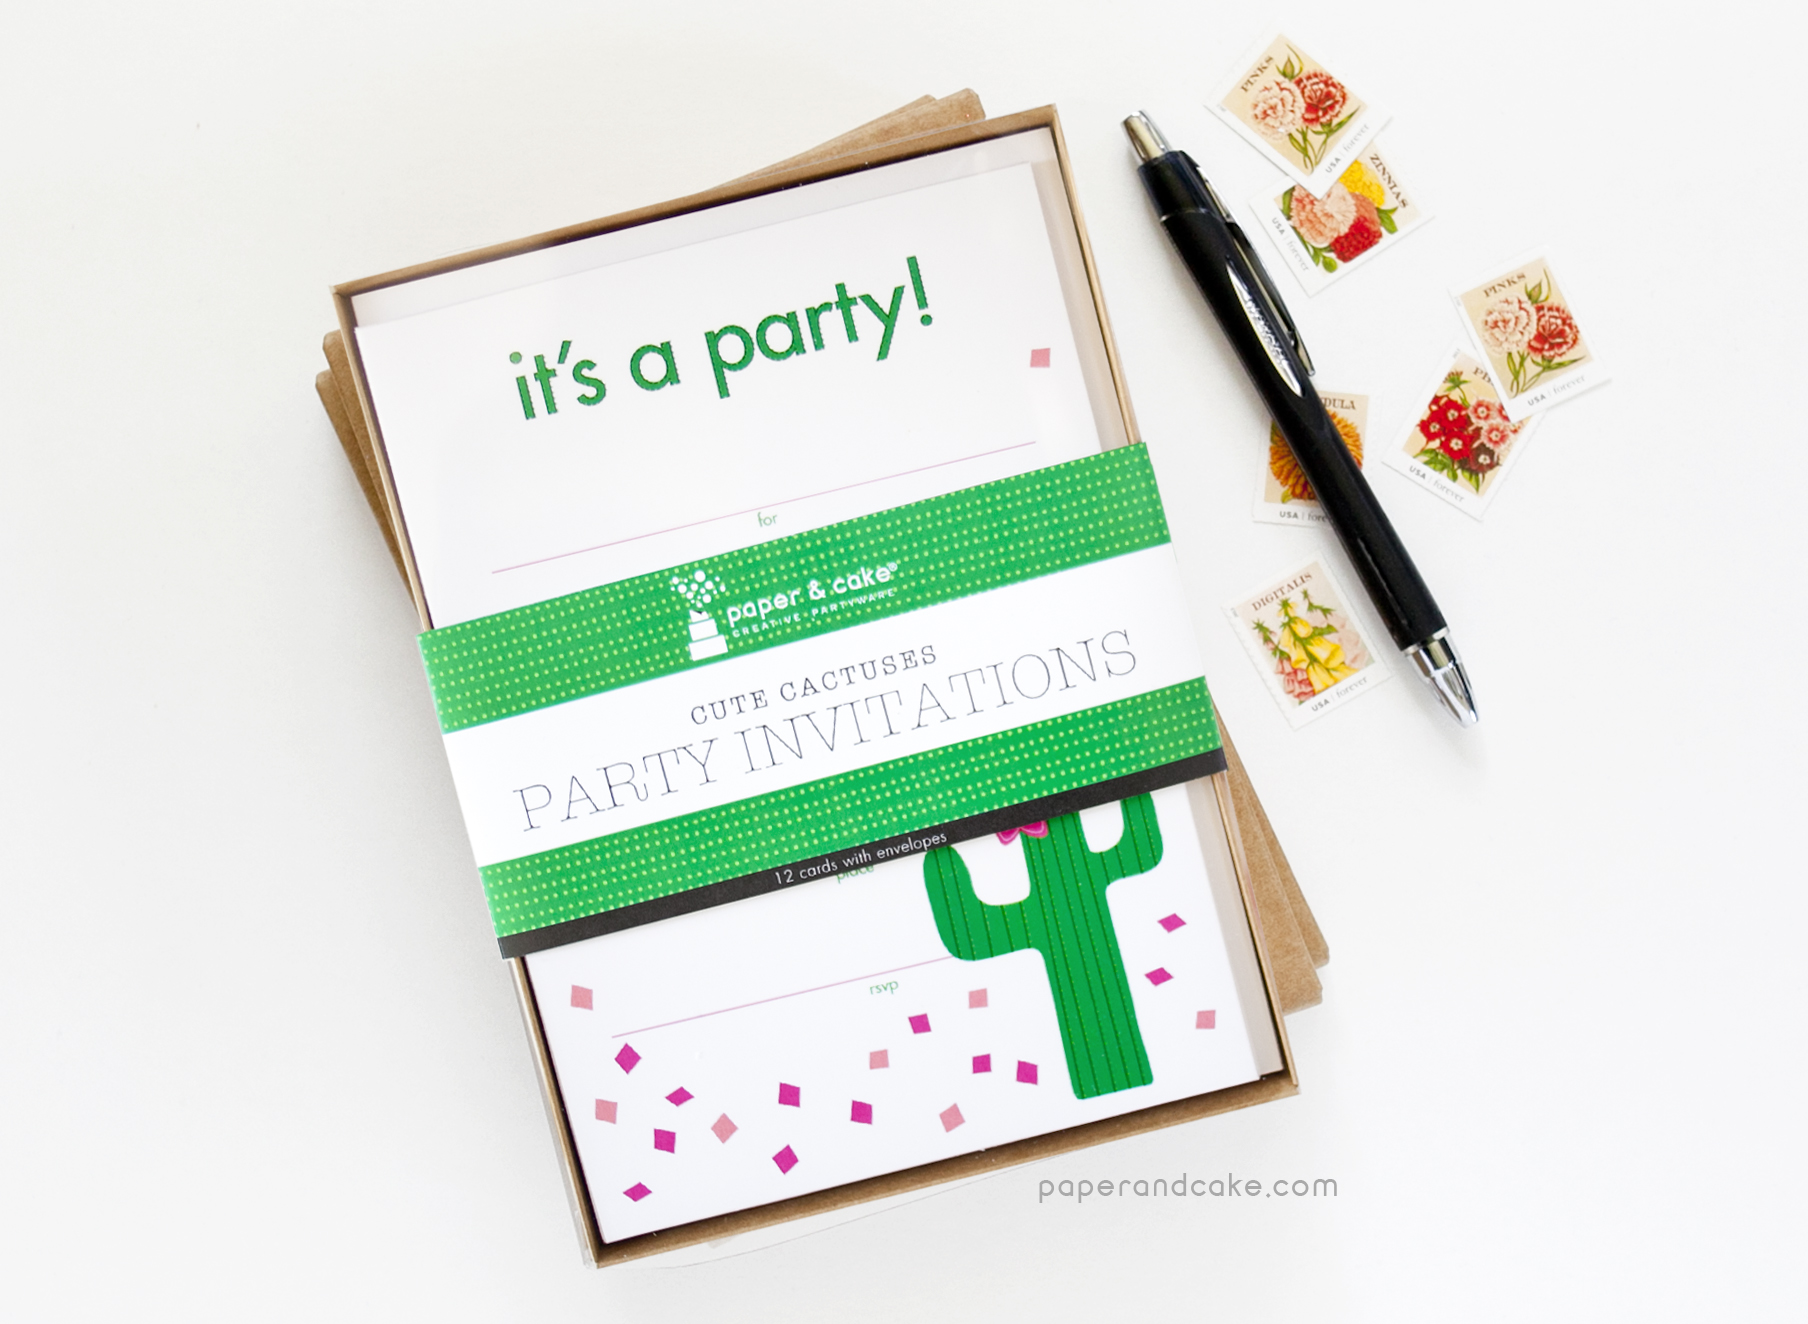 Cactus Fill-In Invitations - Paper and Cake Paper and Cake